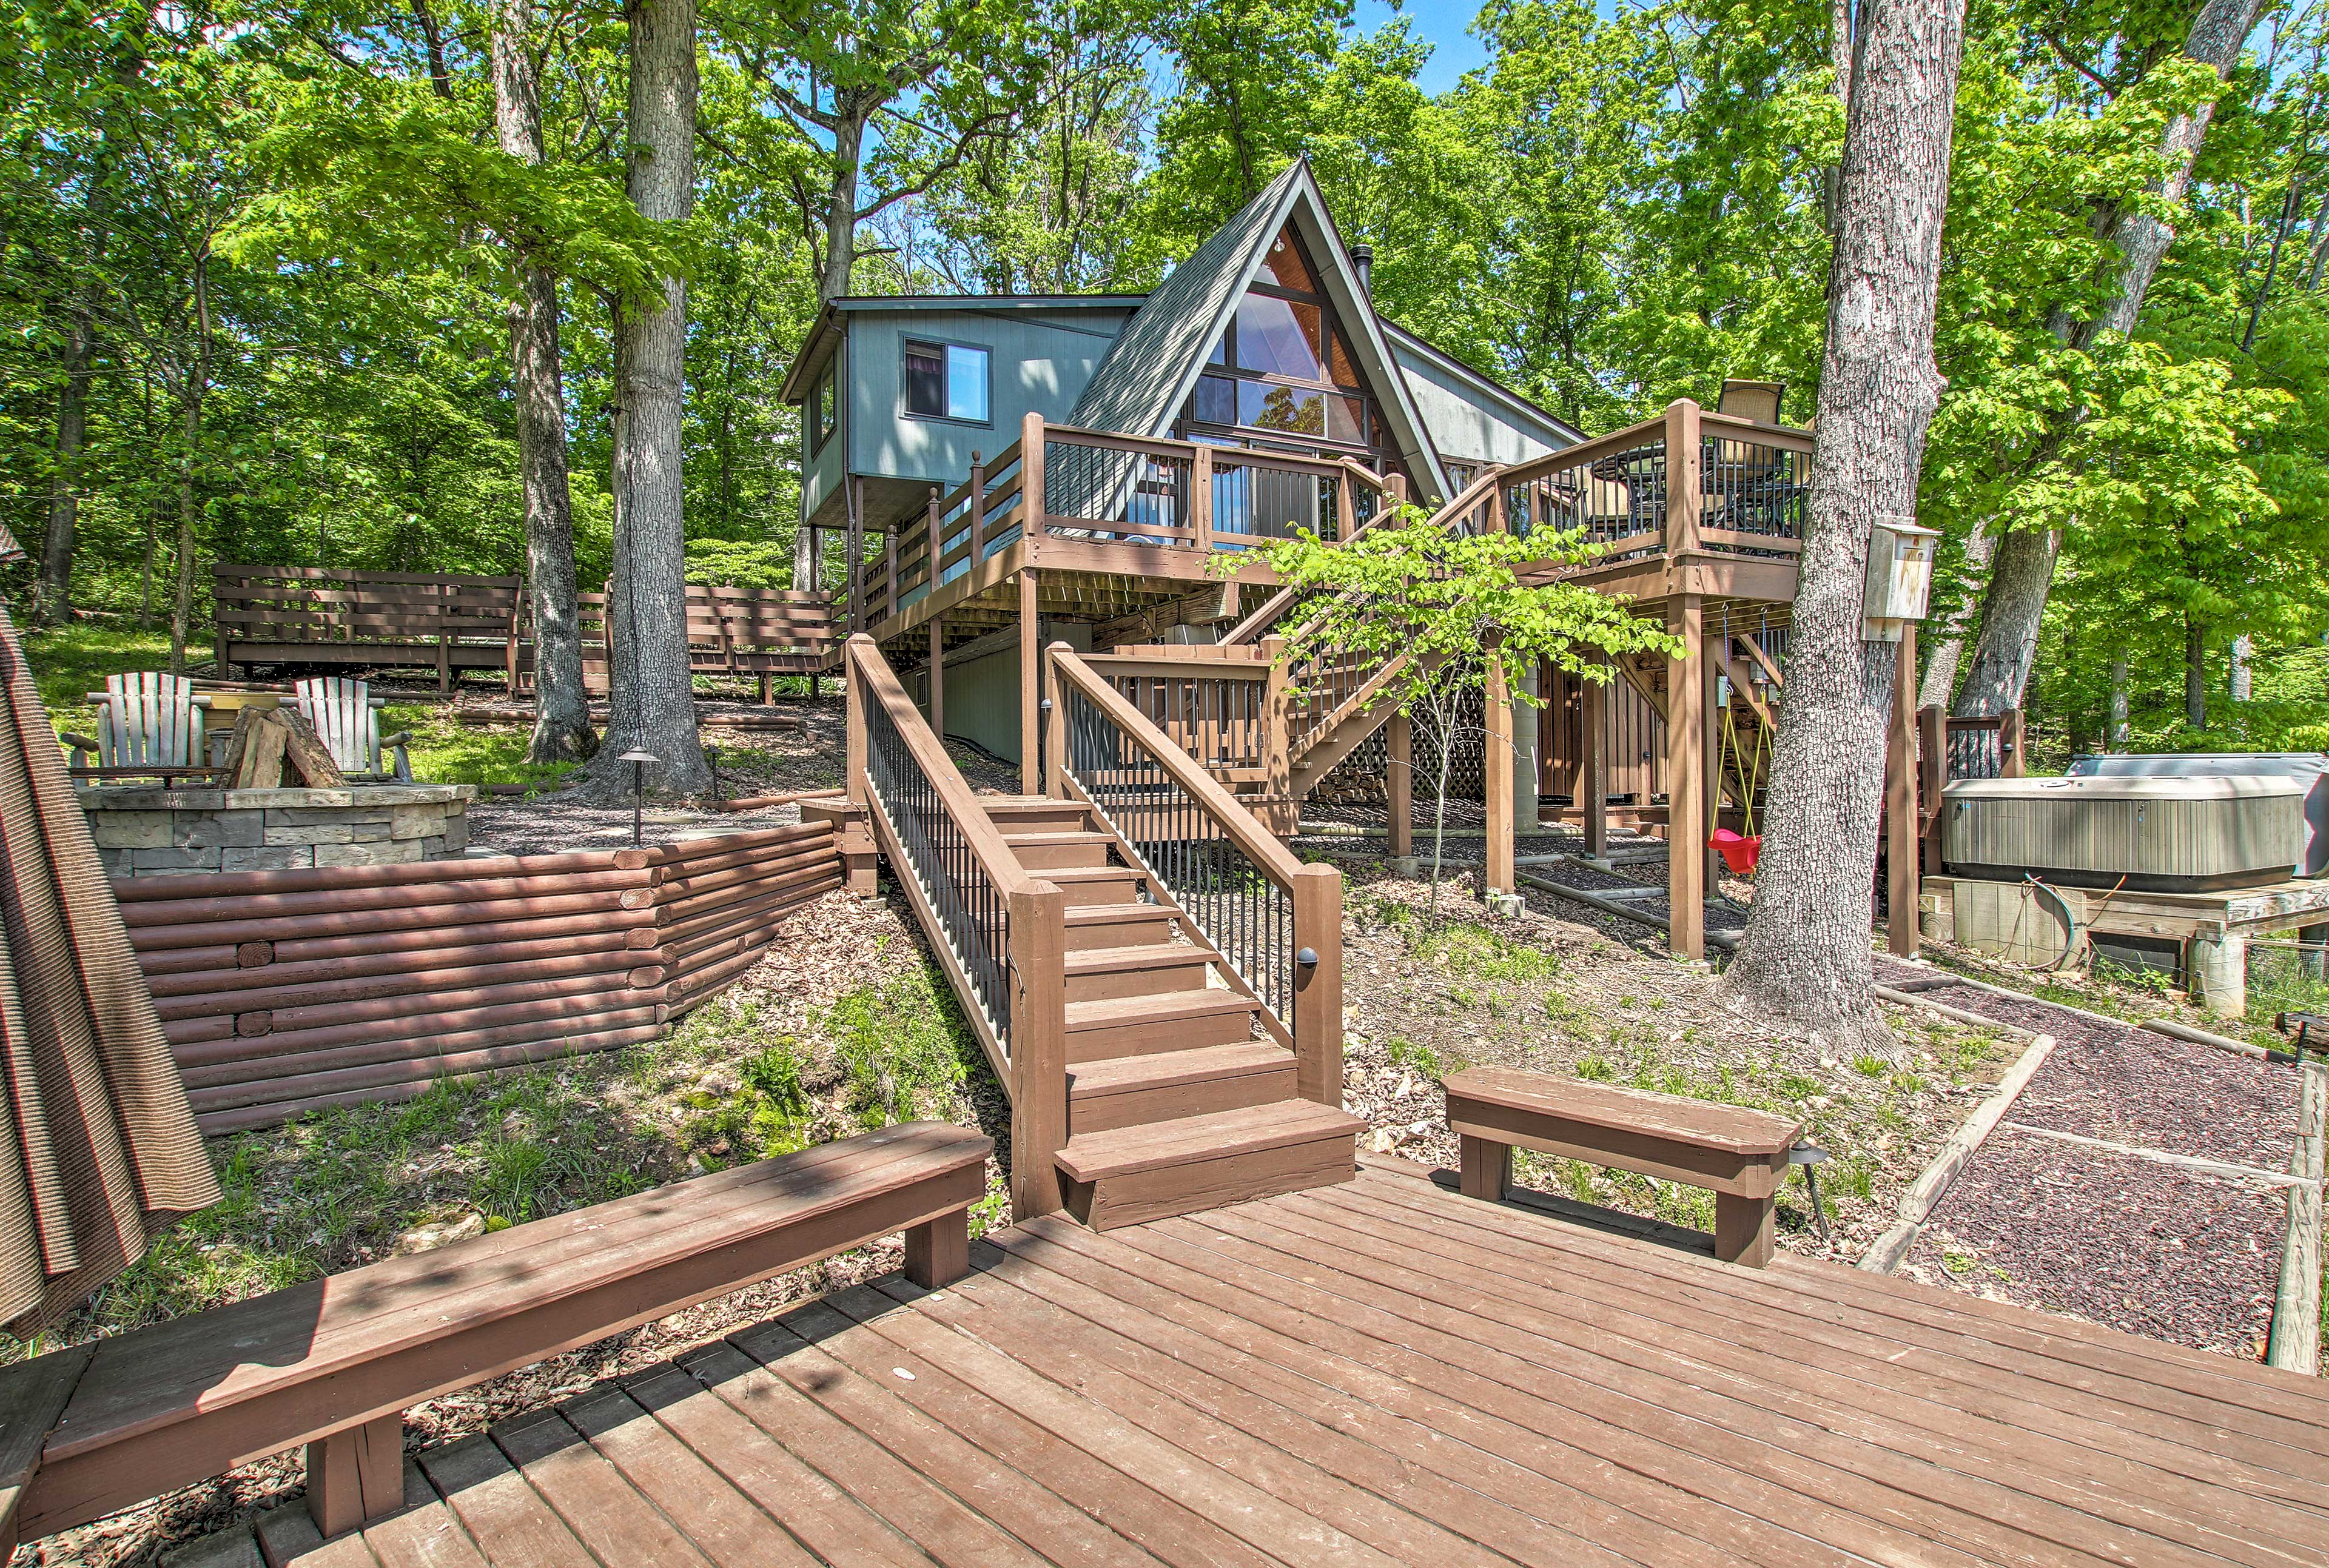 Book the vacation of a lifetime at this one-of-a-kind cabin at Innsbrook Resort.